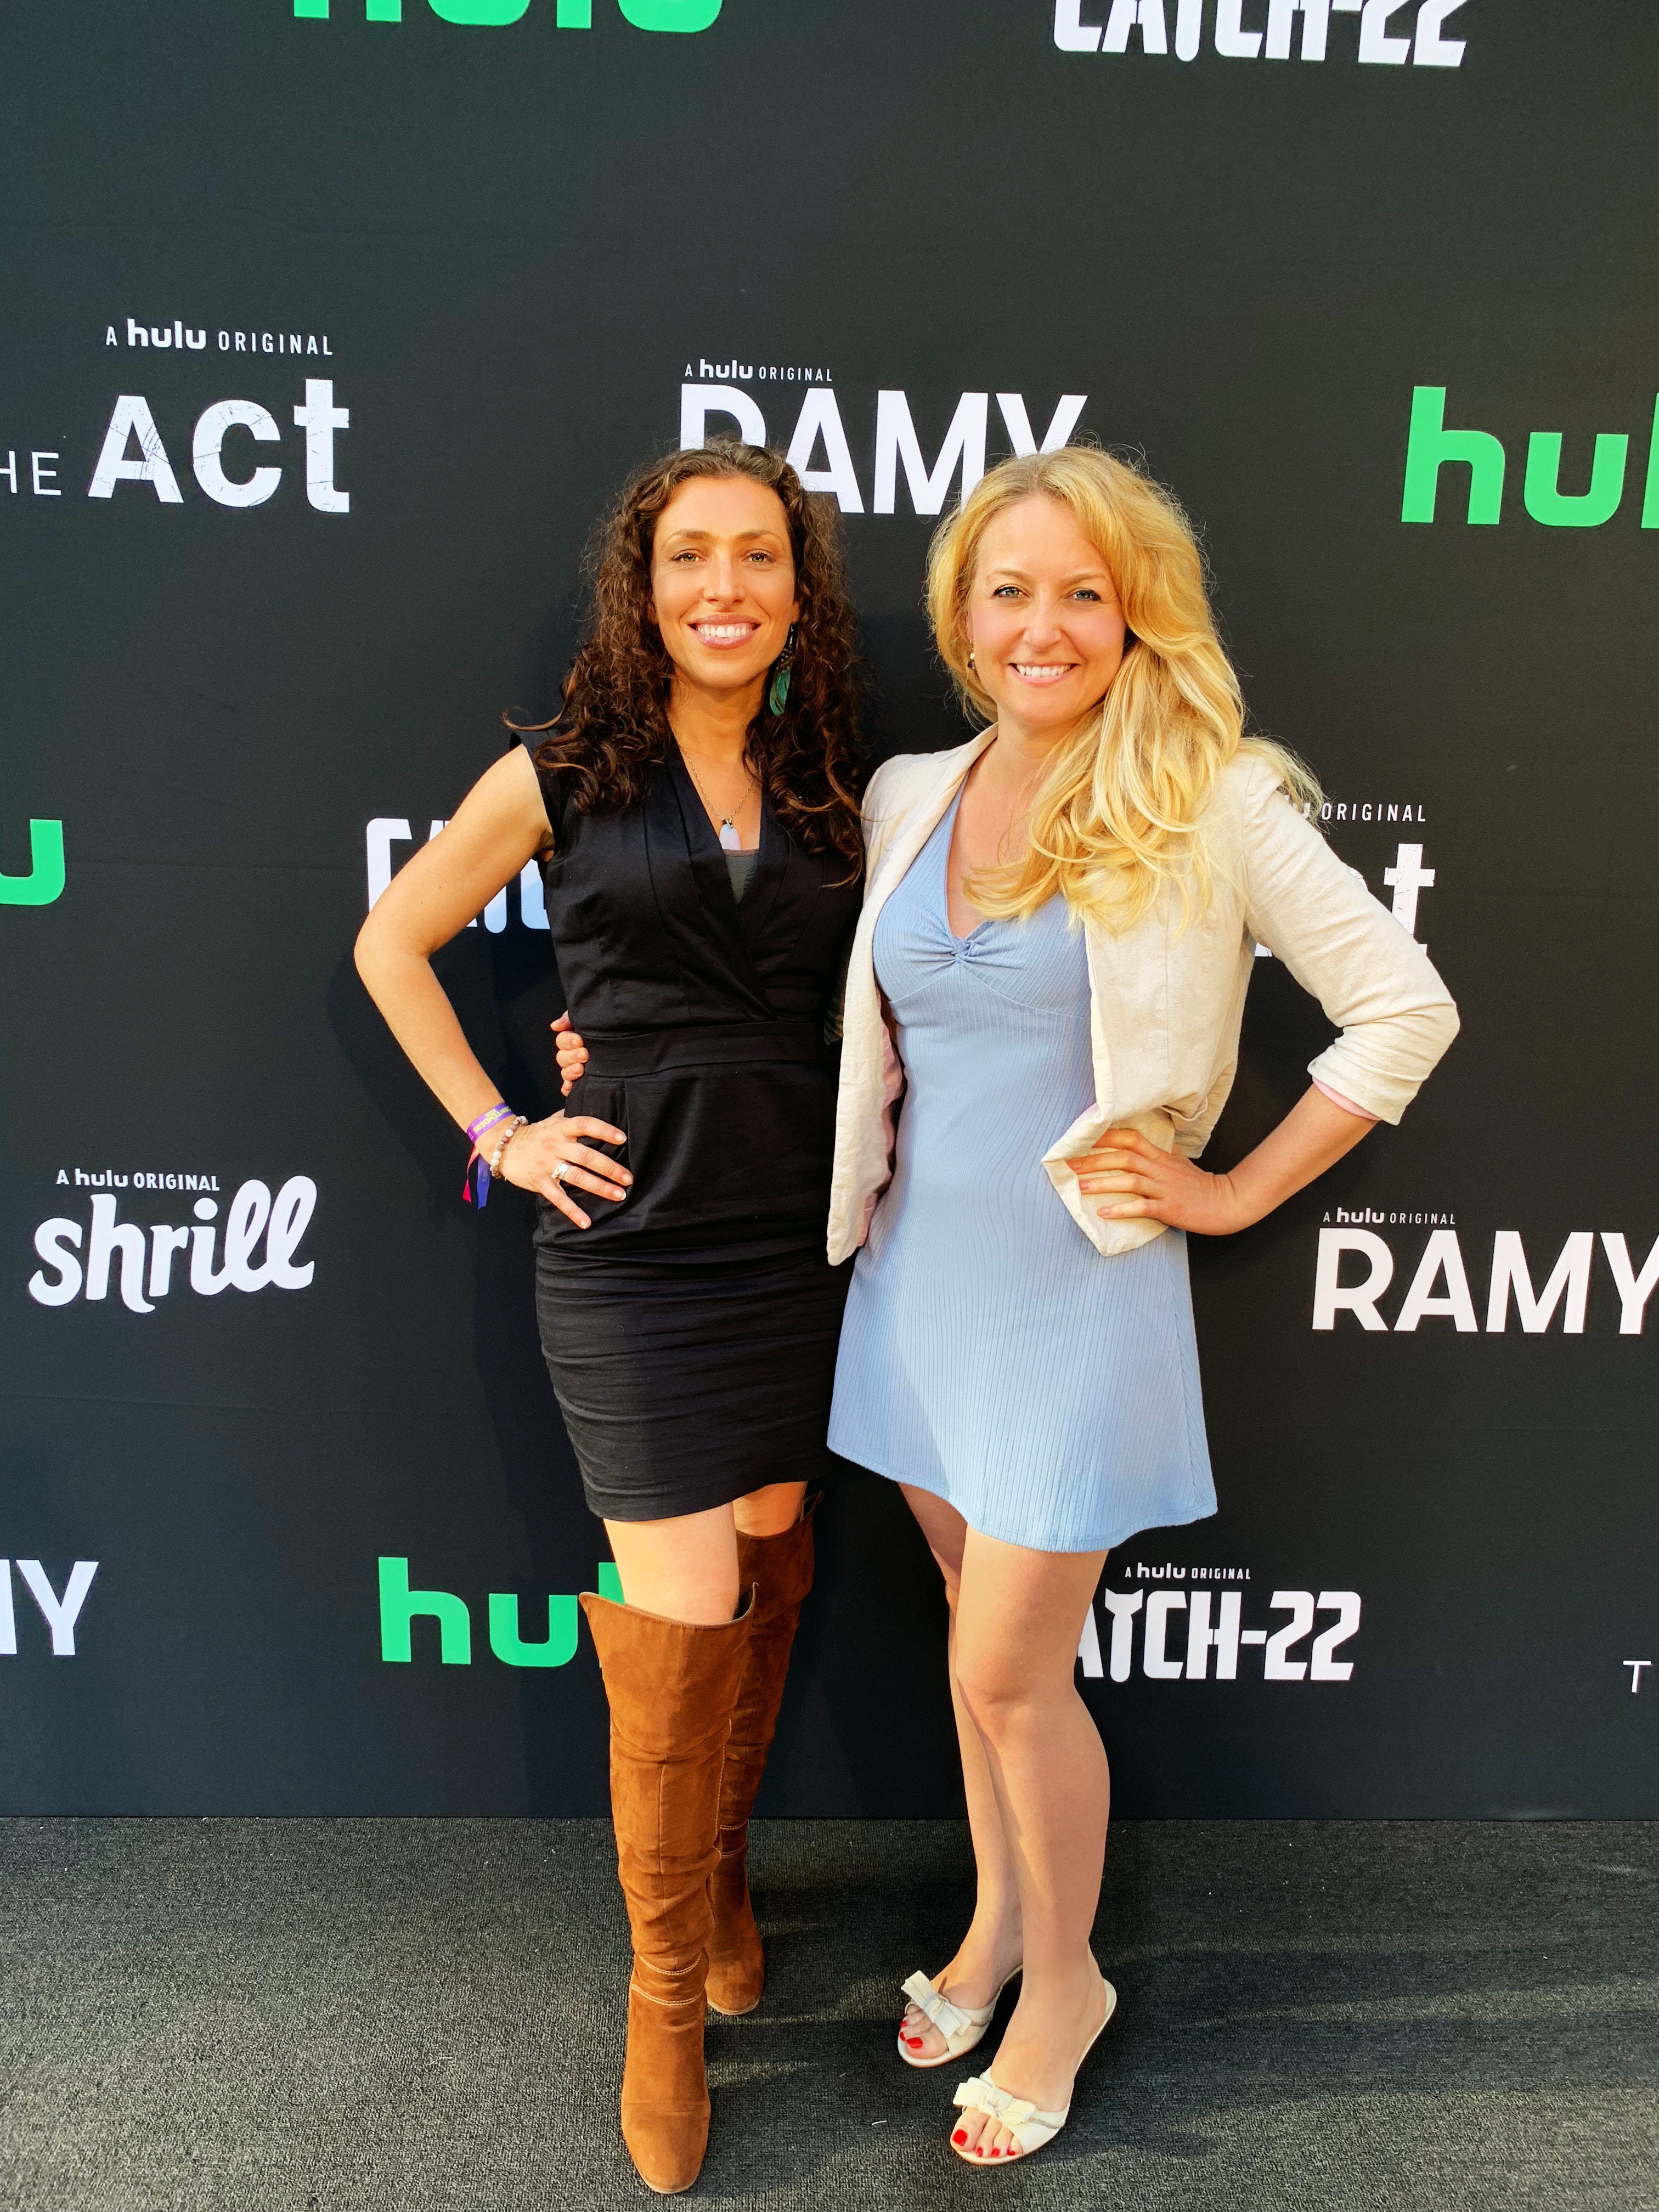 Janine attends the red carpet with Sandra De Sousa for Emmy Contenders with Hulu.